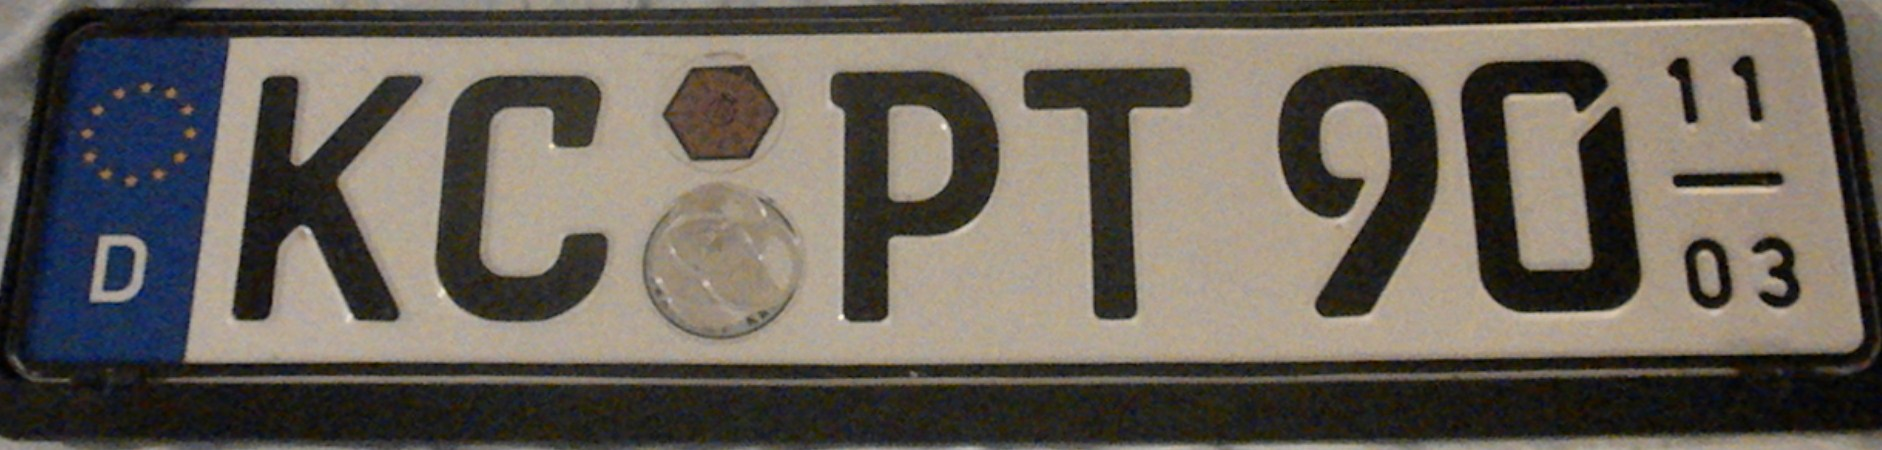 Defacedgermanplate